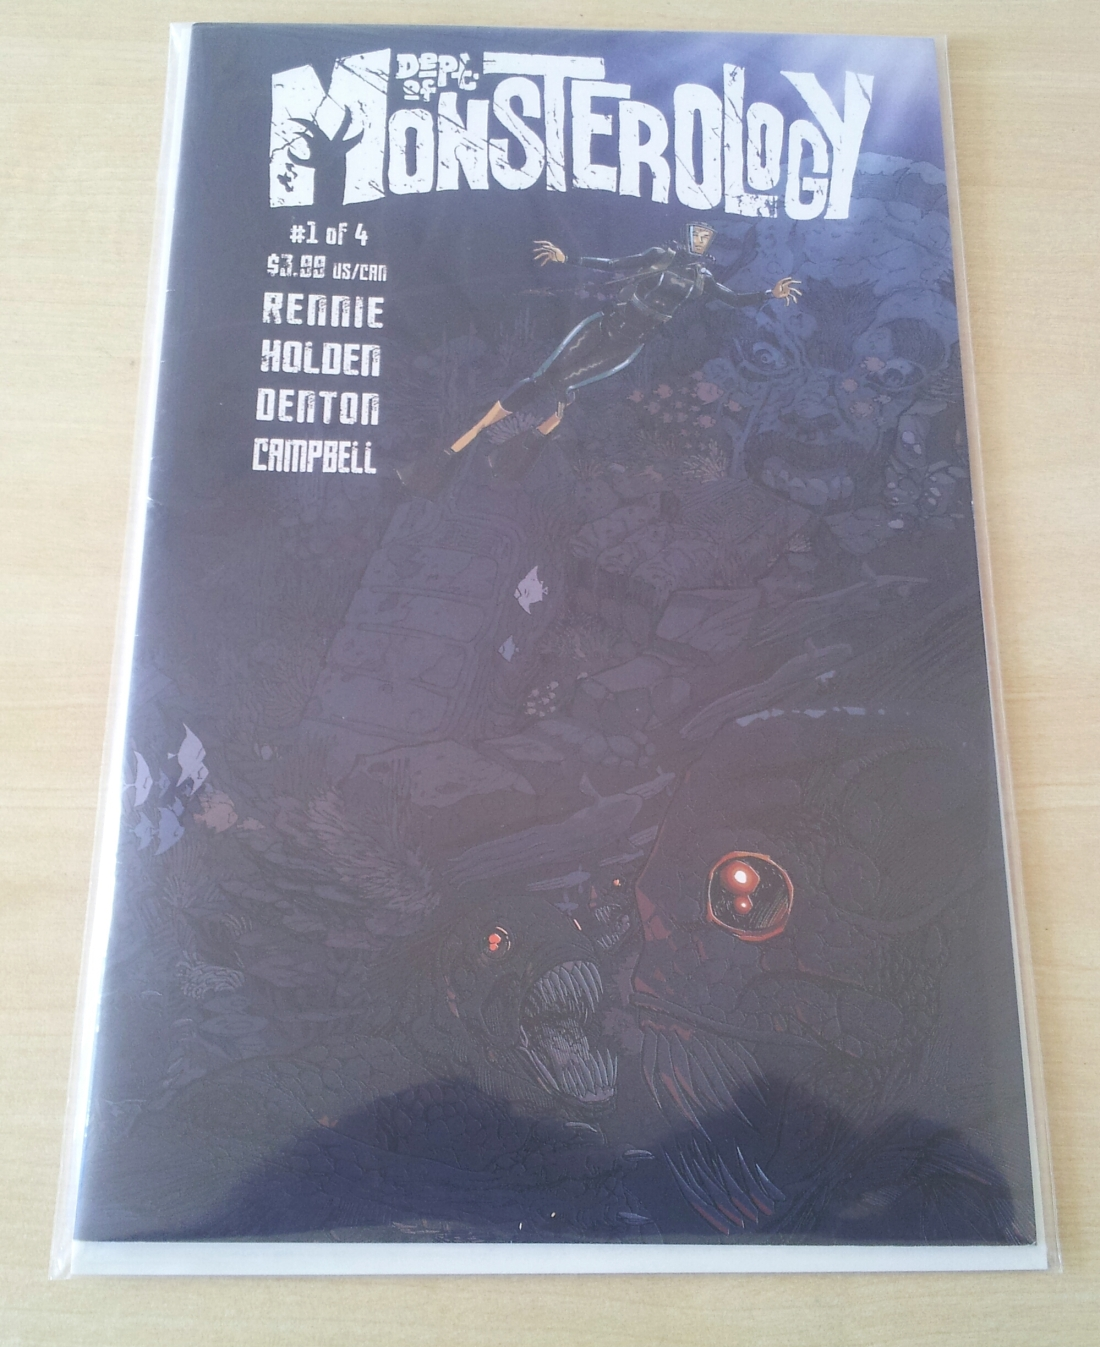 THE DEPT. OF MONSTEROLOGY #1 REVIEW